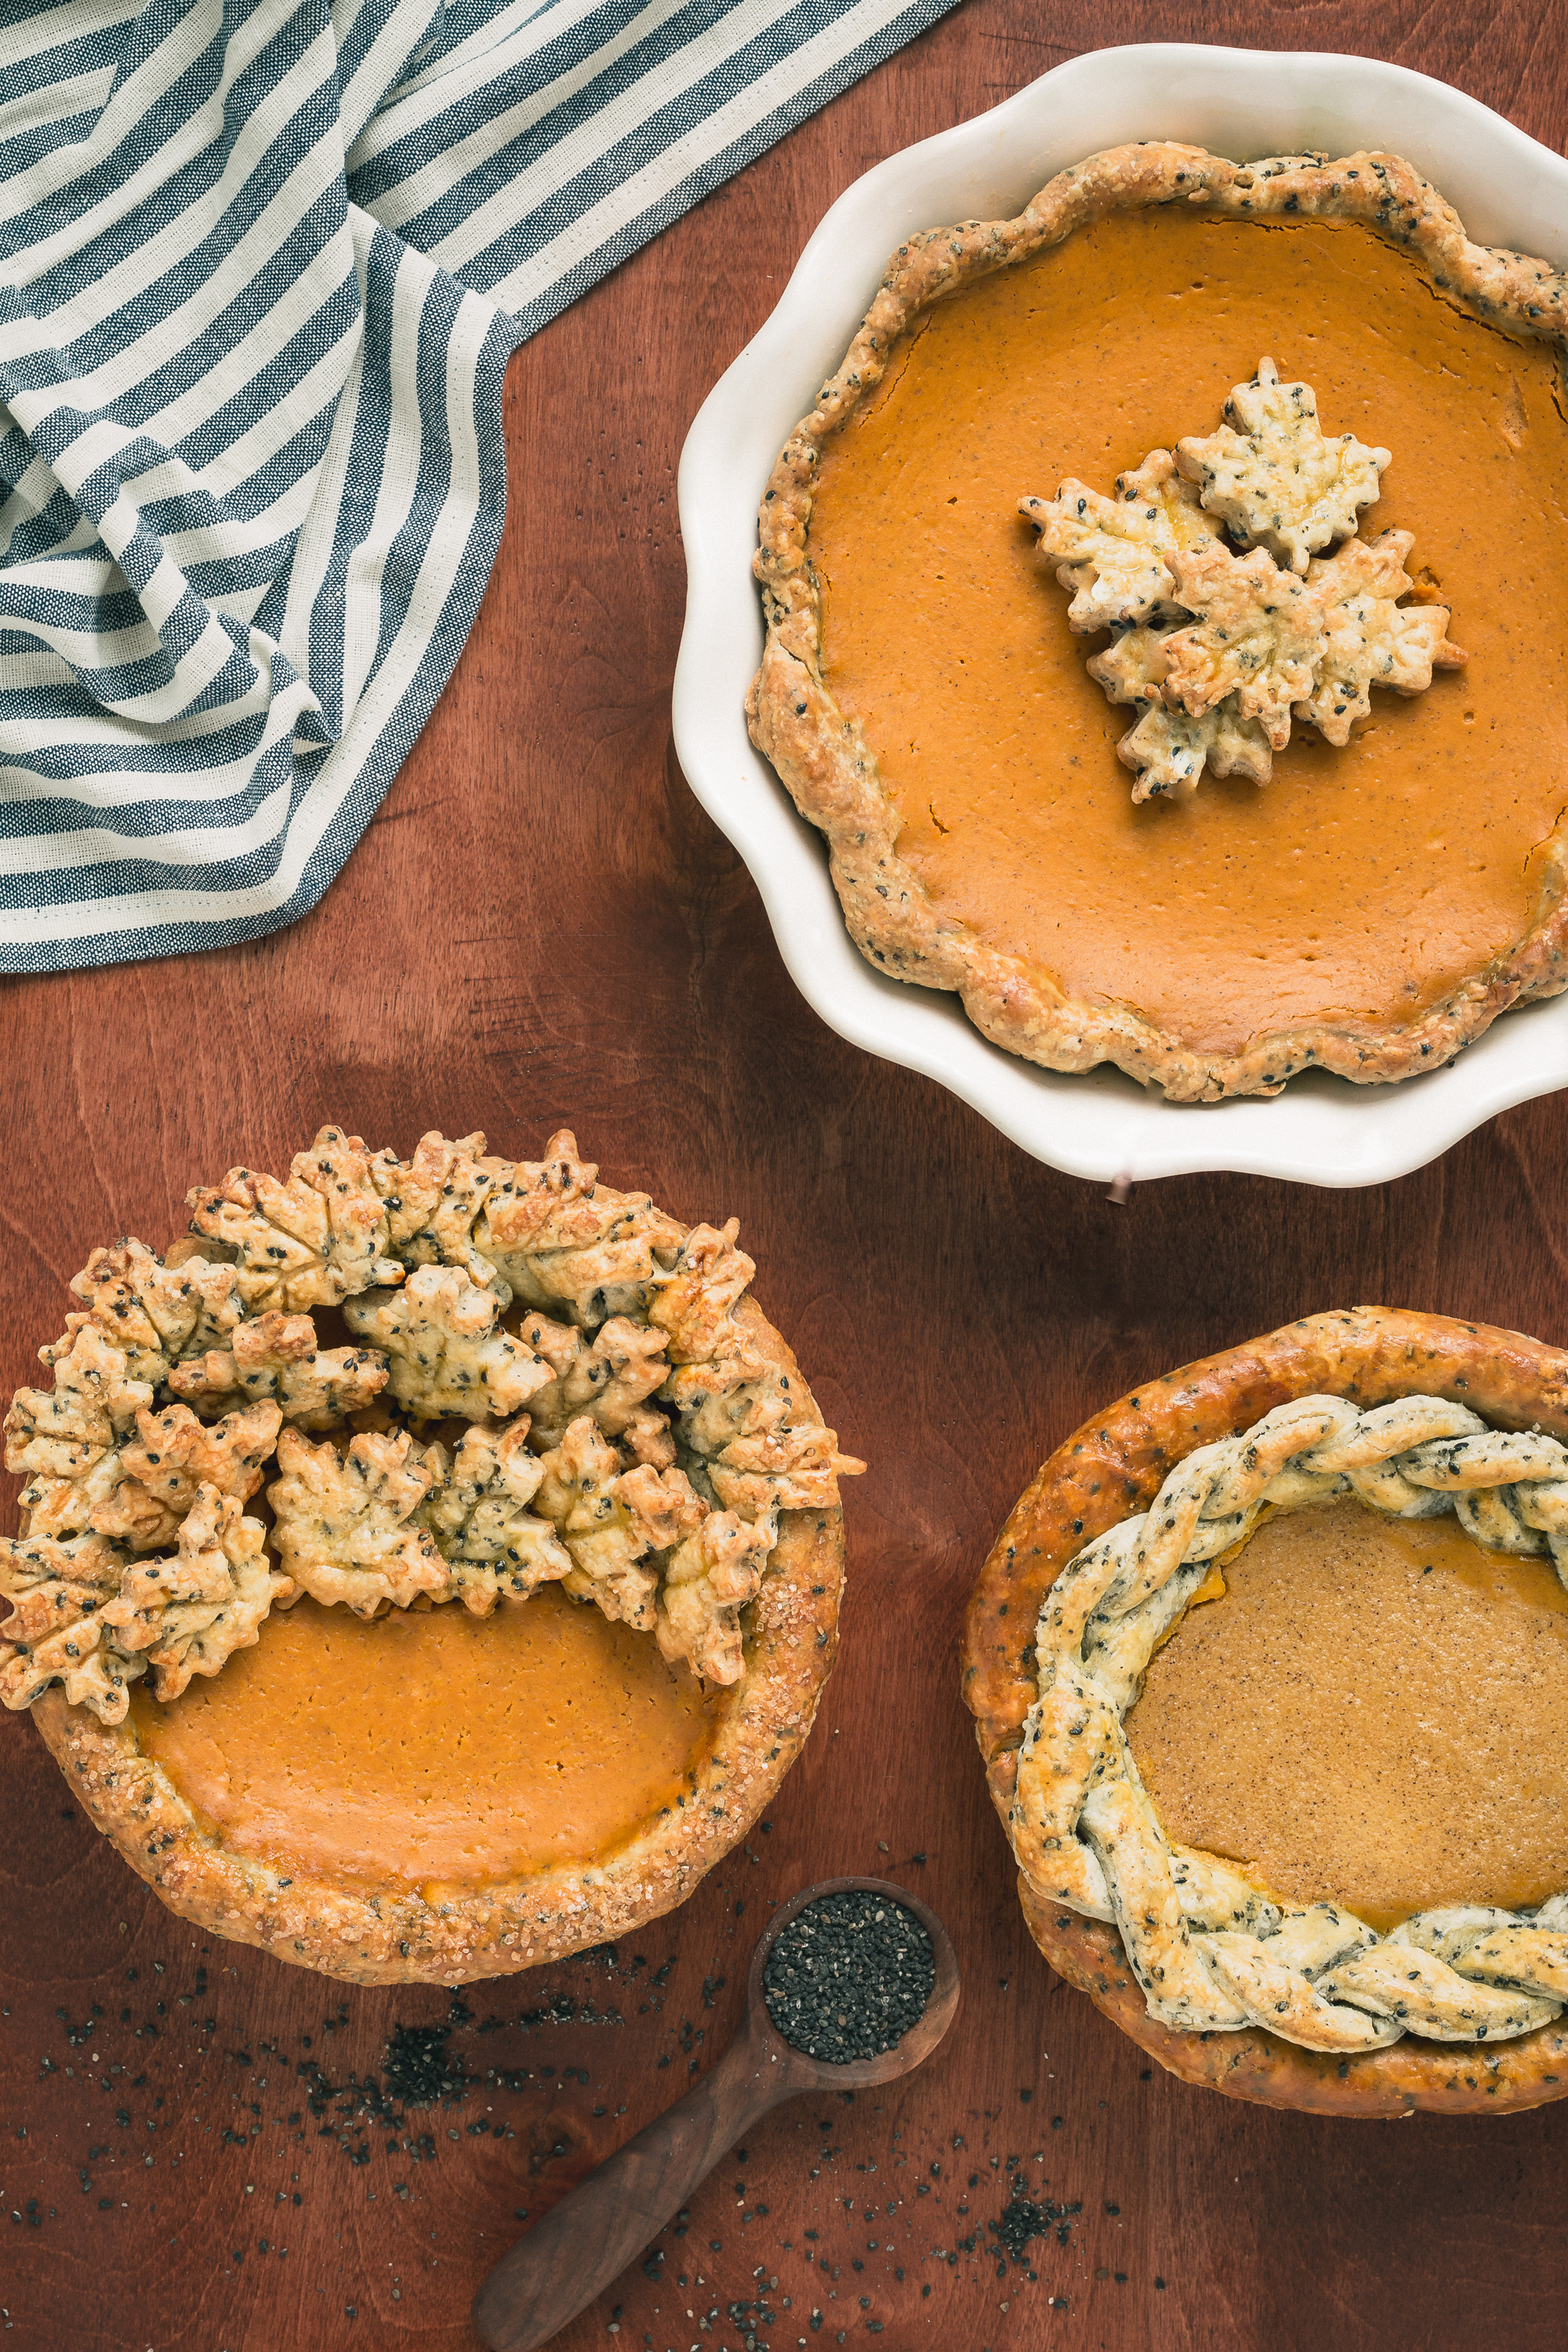 The Road to Honey's Most Popular Recipes of 2016 - Bourbon Pumpkin Pie with Black Sesame Crust